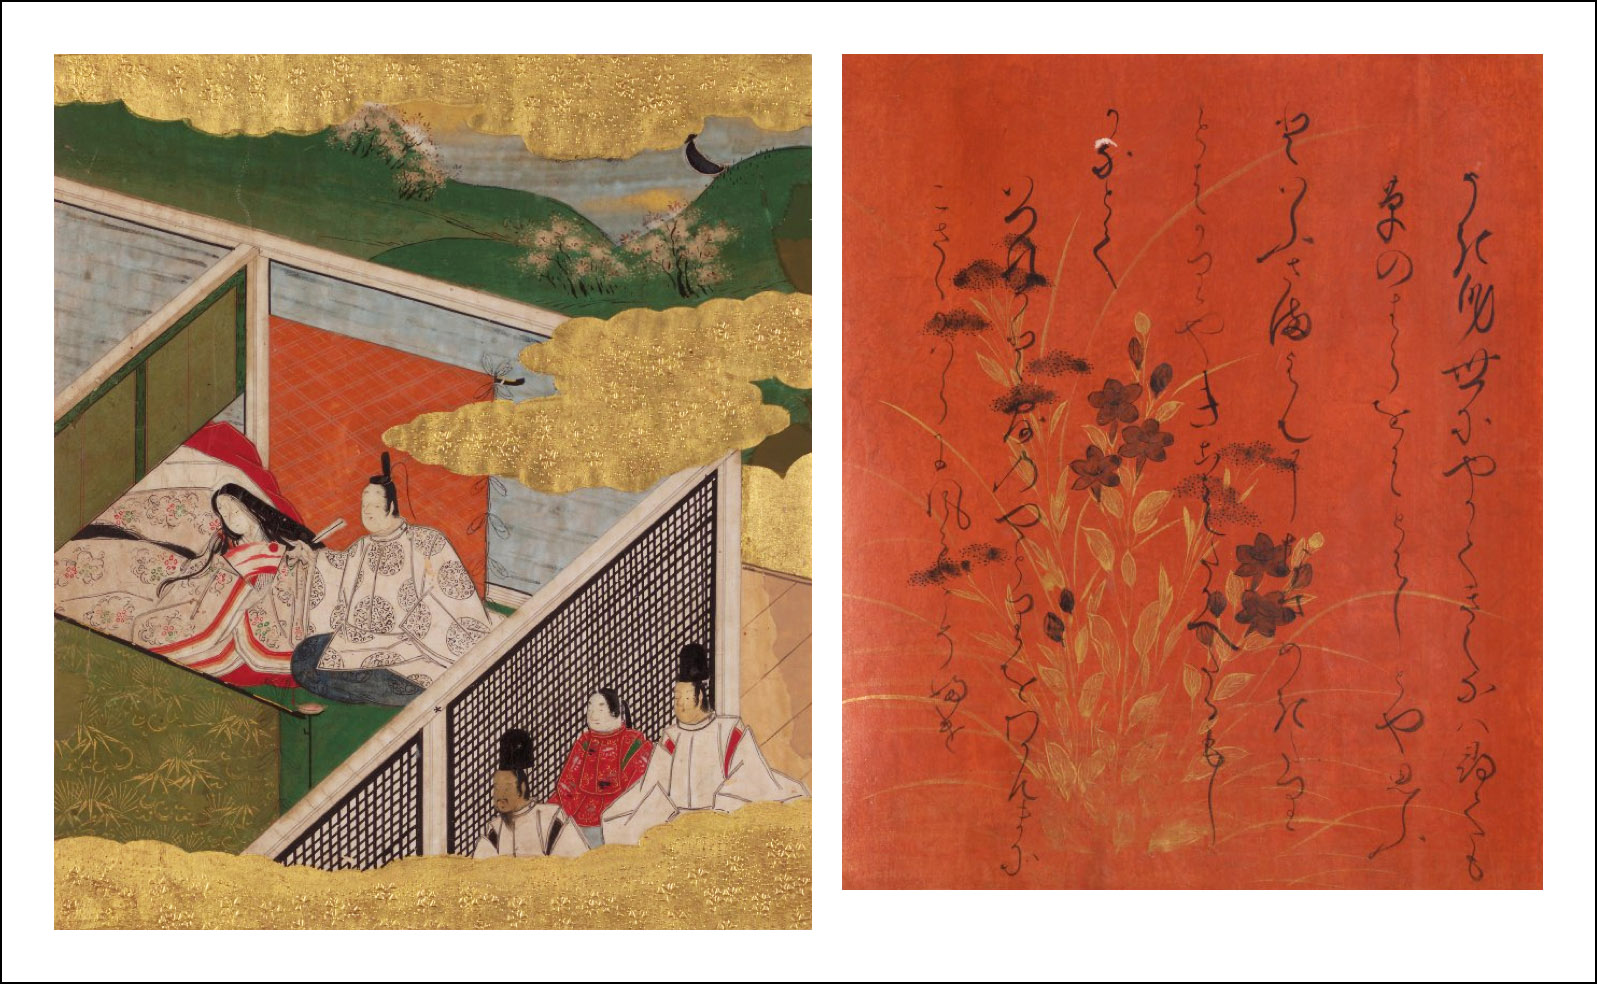 the tale of genji and the The tale of genji (genji monogatari)introduction the 'genji monogatari' (story of genji) is the great novel of classical japanese literature, widely regarded as one of the greatest works of japanese literature.